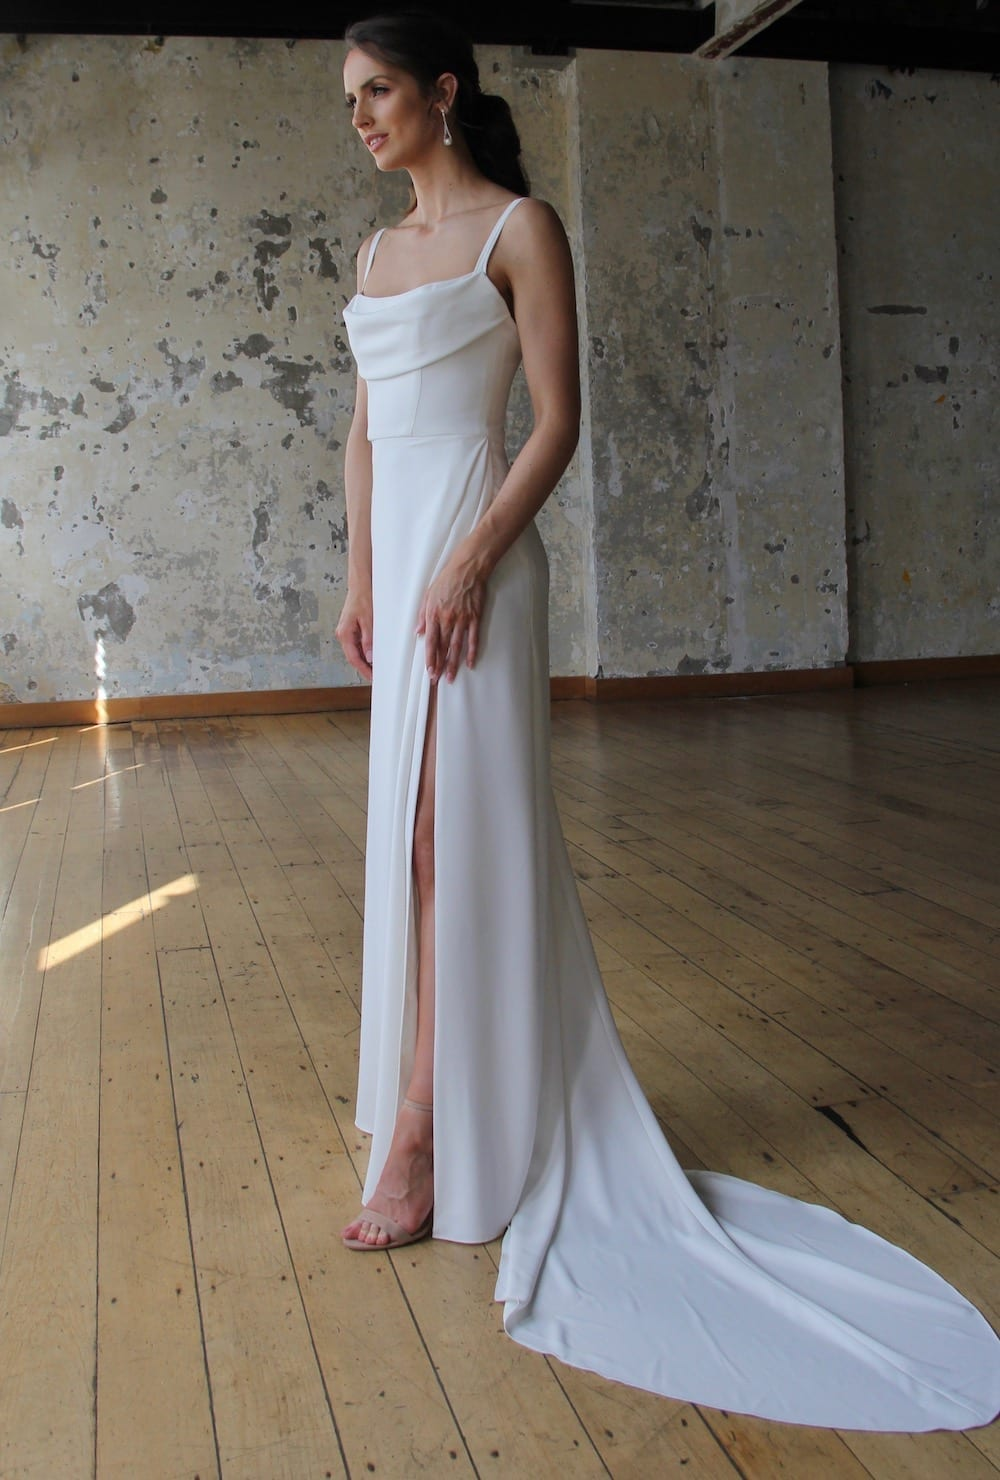 Female model wearing Vinka Design Modern Muse Wedding Dress. In chic warehouse the side detail of a gown of soft bridal crepe with a fitted bodice with soft draping over the bust line and a side split skirt.